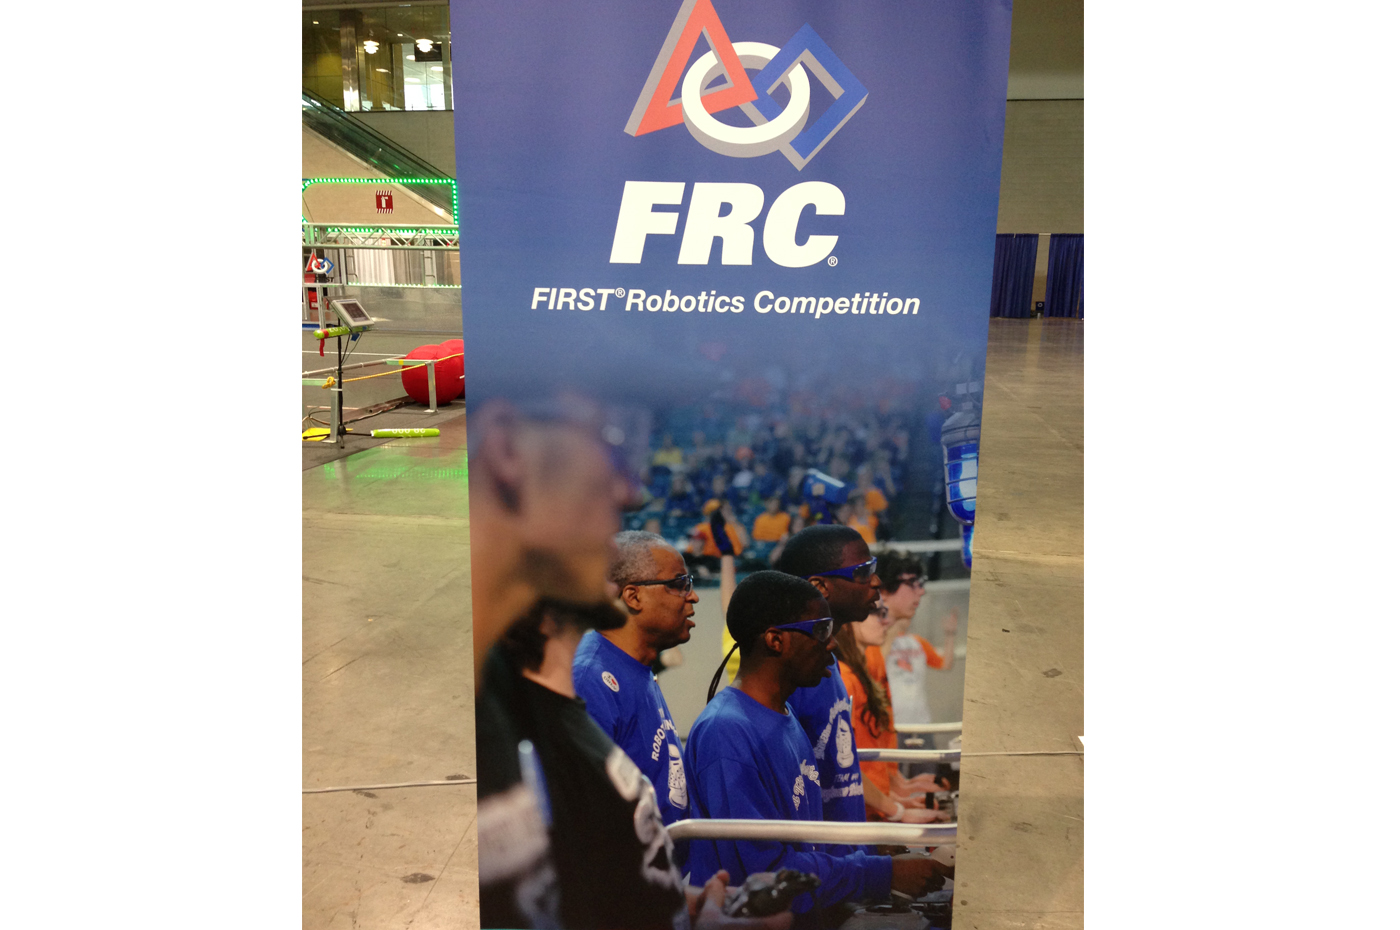 FIRST® Robotics Competition (FRC®).